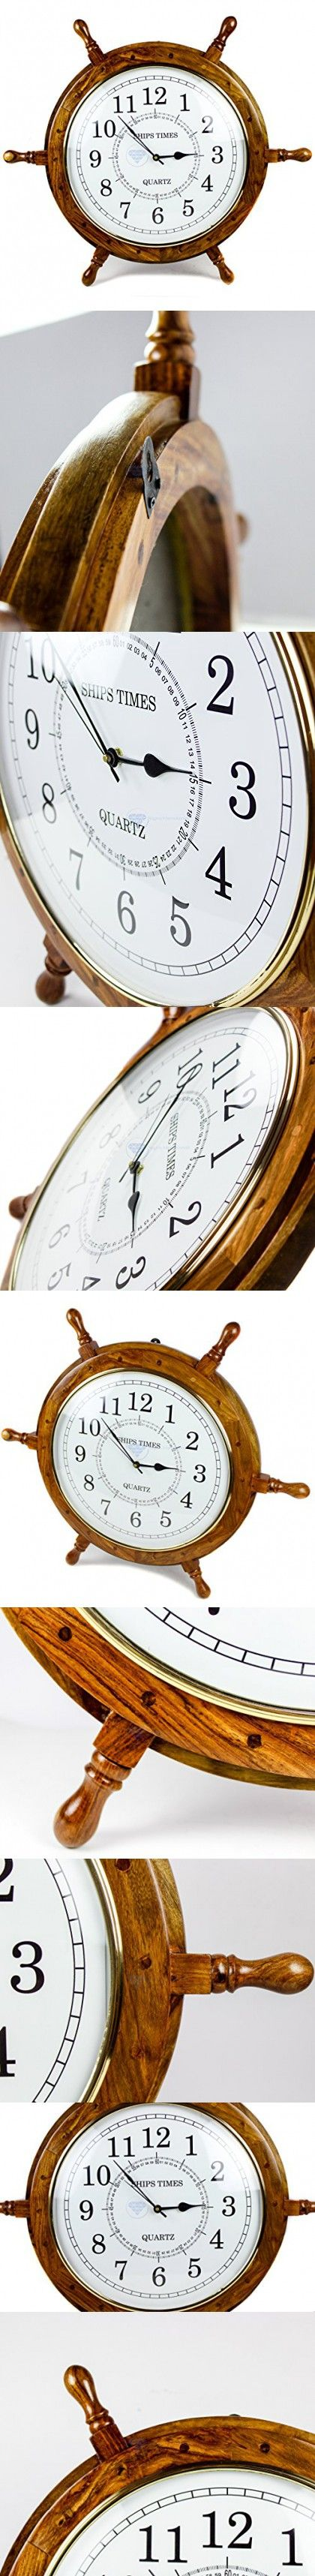 Nautical Hand Crafted Wooden Ship Wheel With Quartz Times Wall Clock - Pirate Nursery Home Decor - Nagina International (16 Inches, White Dial Face)